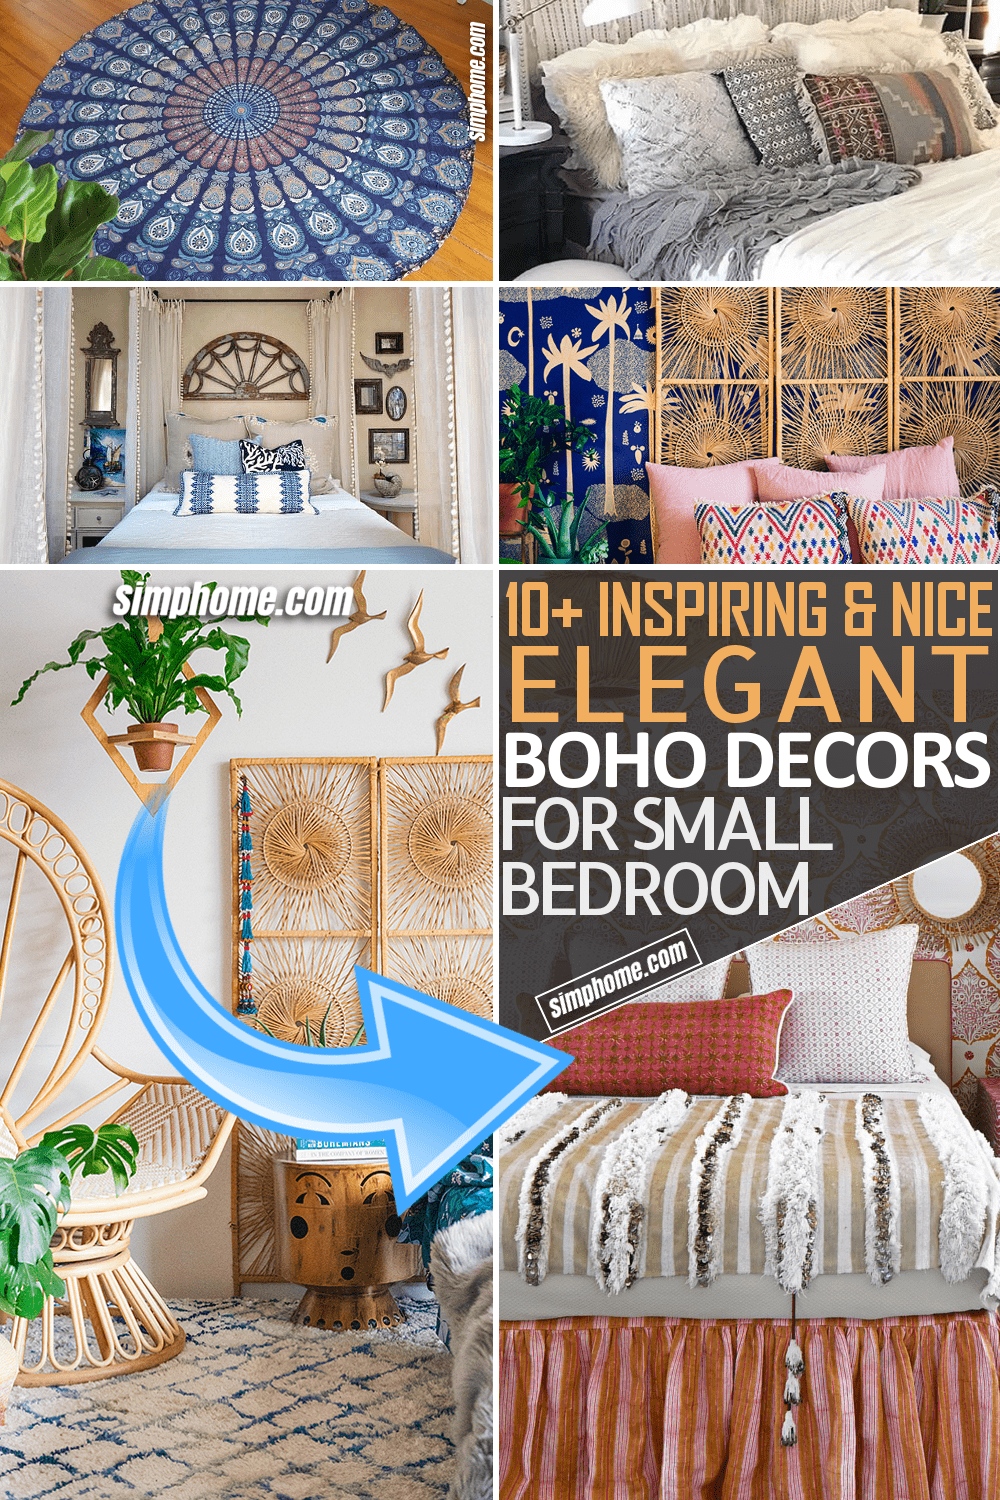 Simphome.com 10 Elegant Boho Bedroom Decor Ideas for a Small Bedroom Pinterest Featured Image